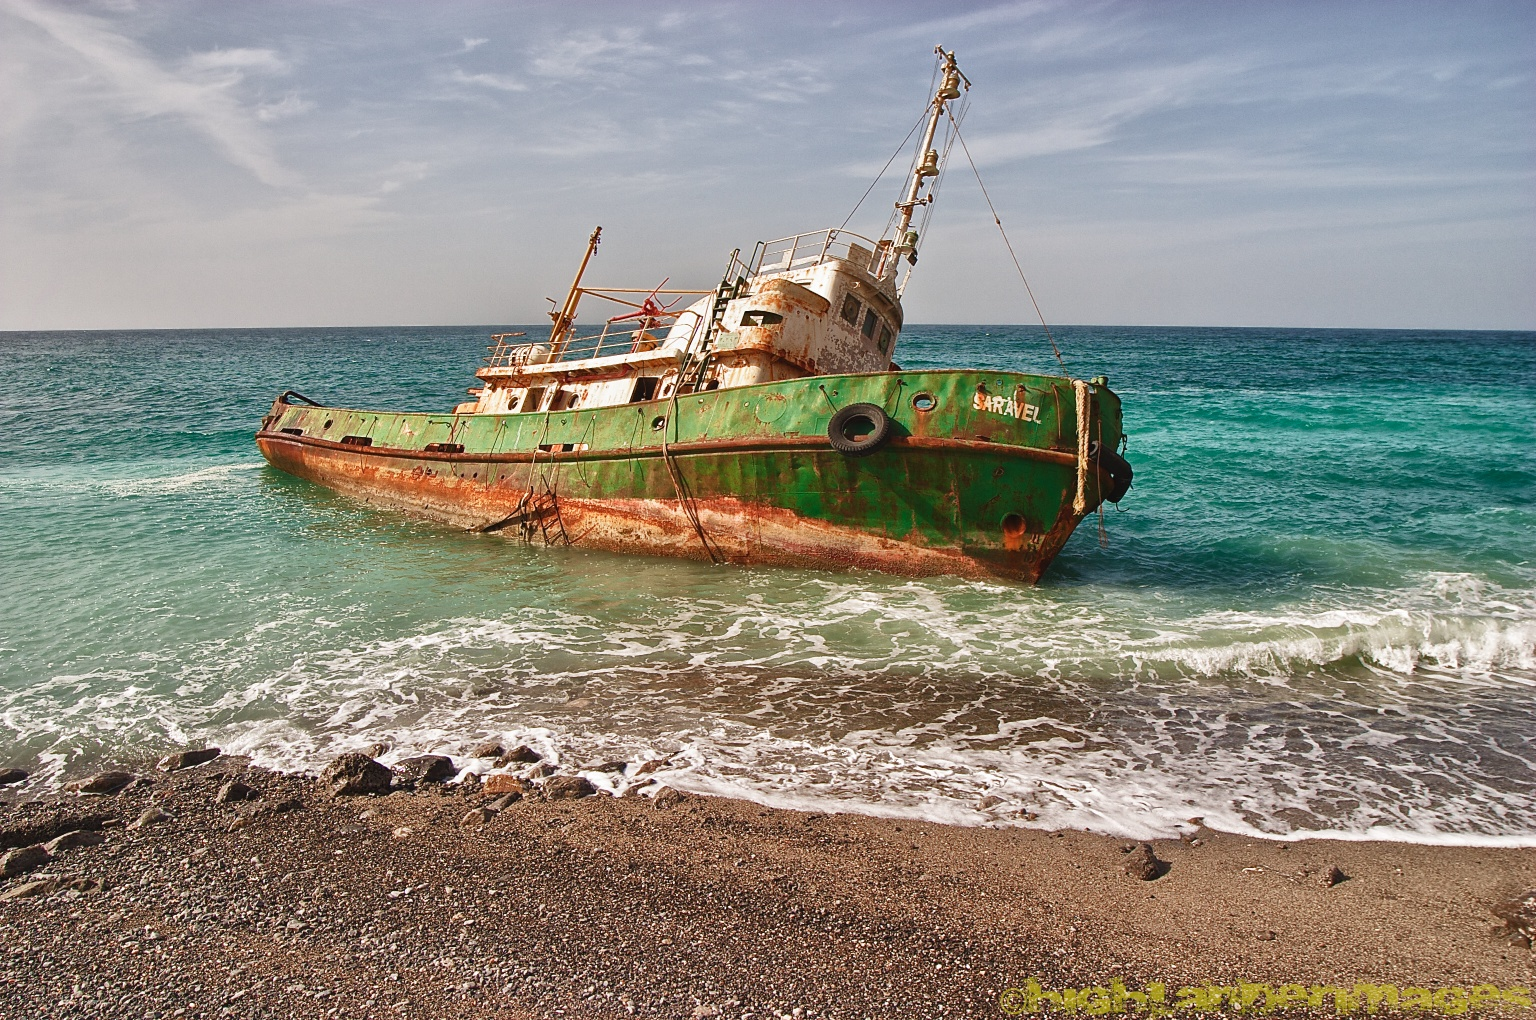 A Blogography of Photography: Shipwreck